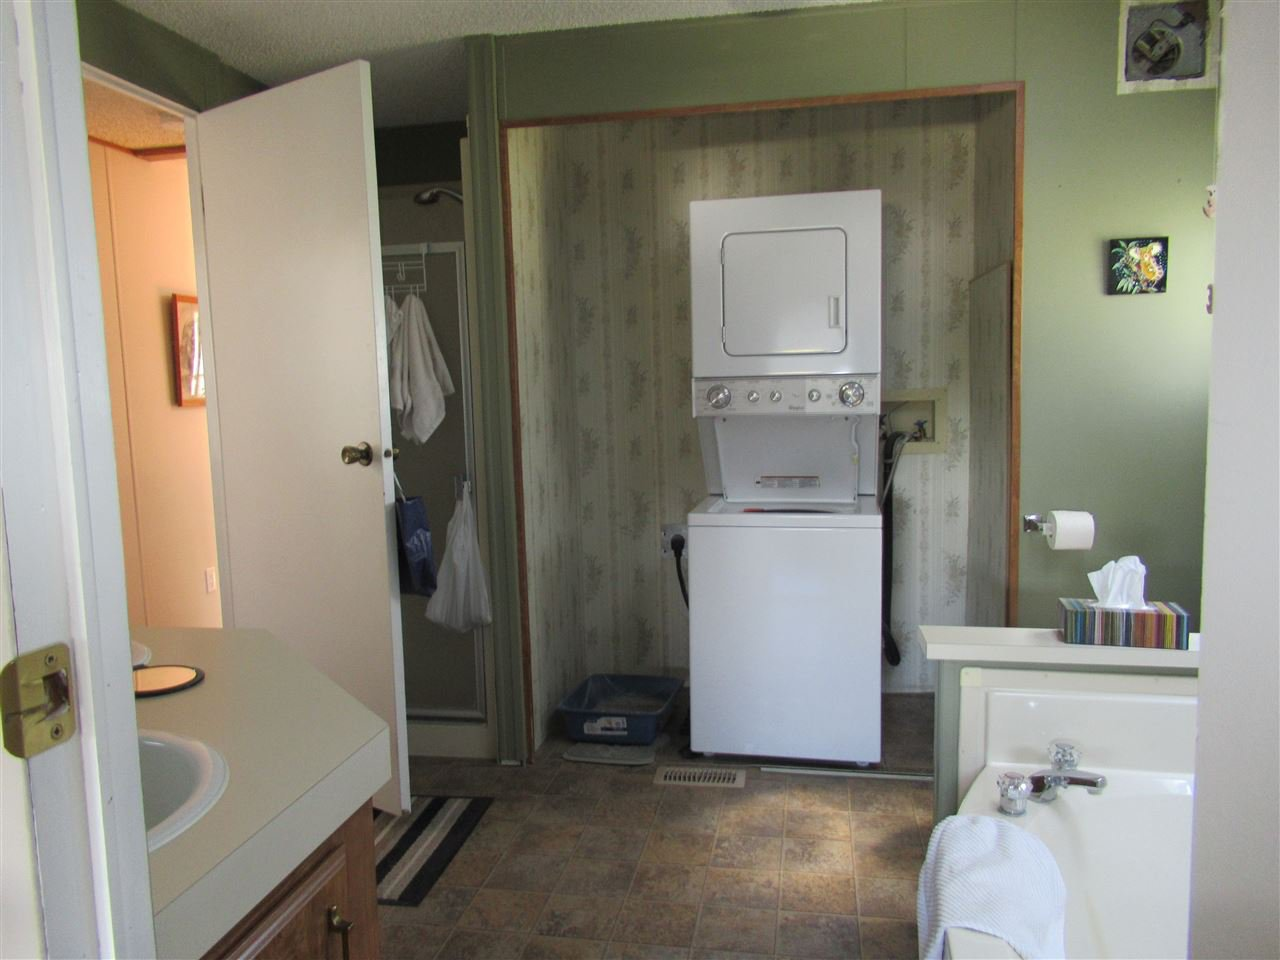 Photo 14: Photos: 75 770 11TH Avenue in Williams Lake: Williams Lake - City Manufactured Home for sale (Williams Lake (Zone 27))  : MLS®# R2368538